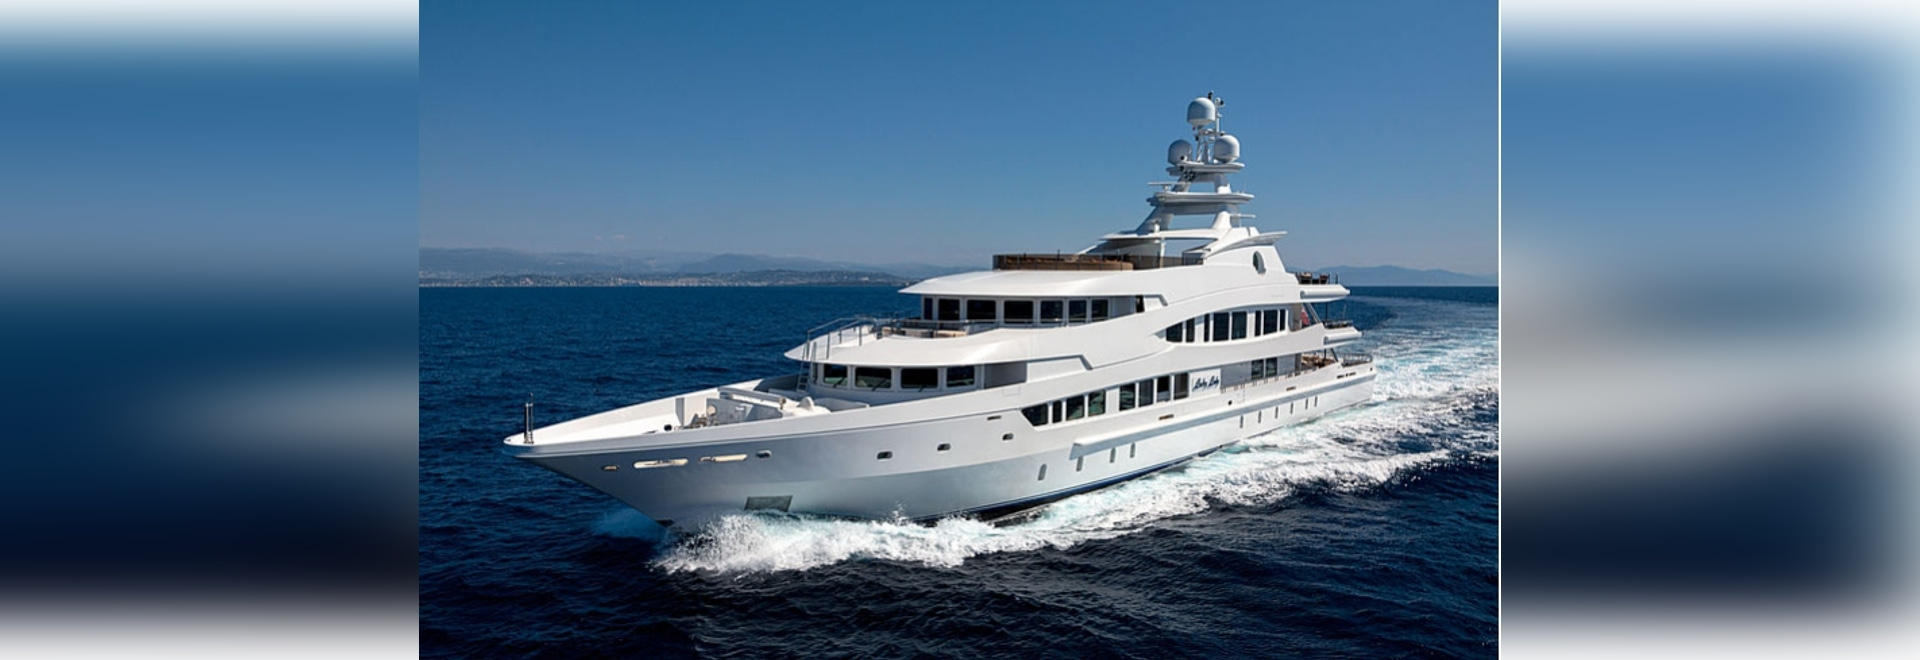 63m Oceanco yacht Lucky Lady on the market